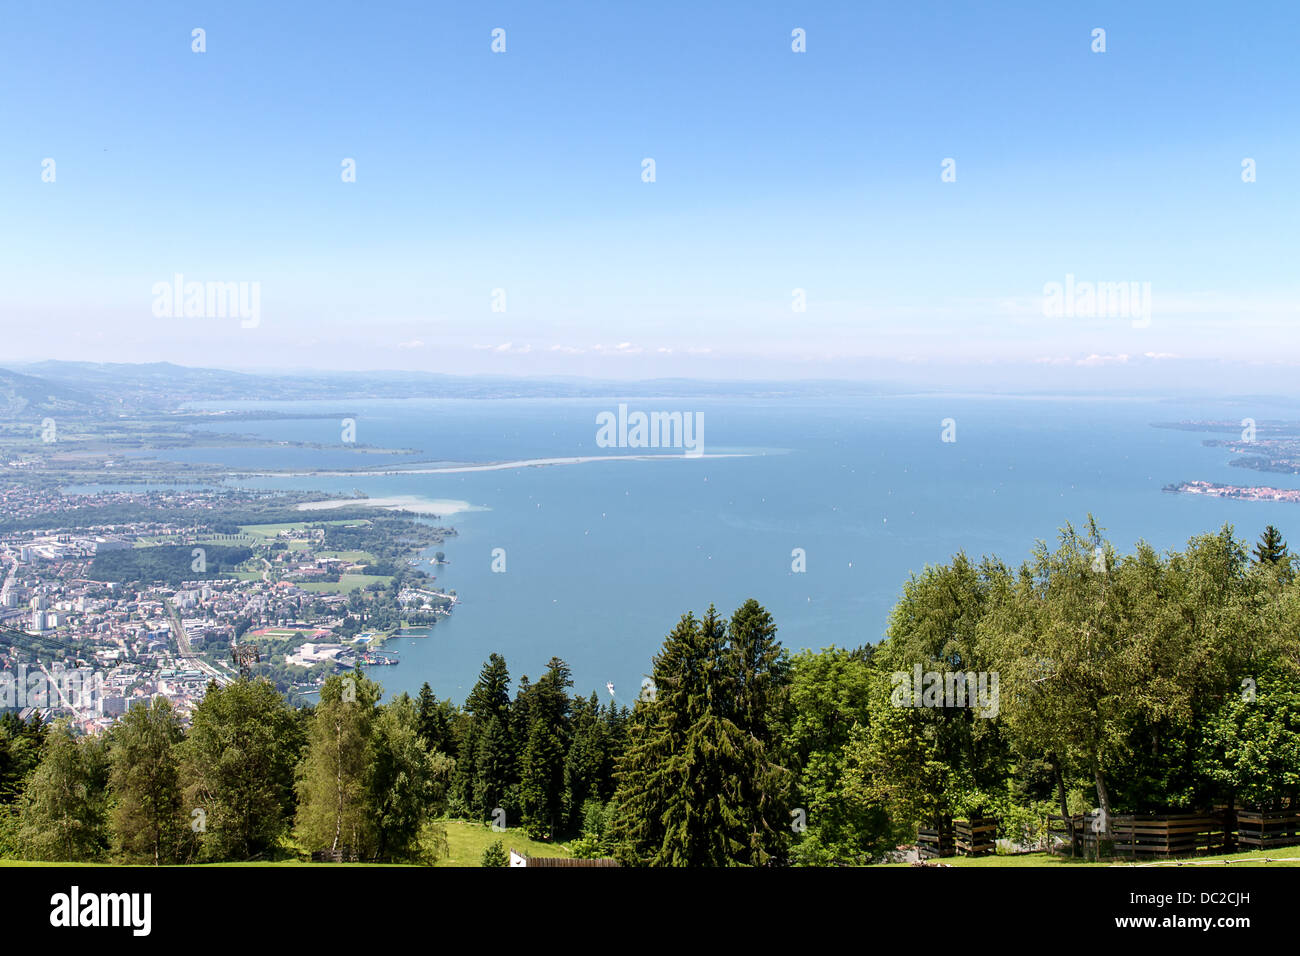 View from the Pfaender near Bregenz in Austria on the Lake Constance - Stock Image